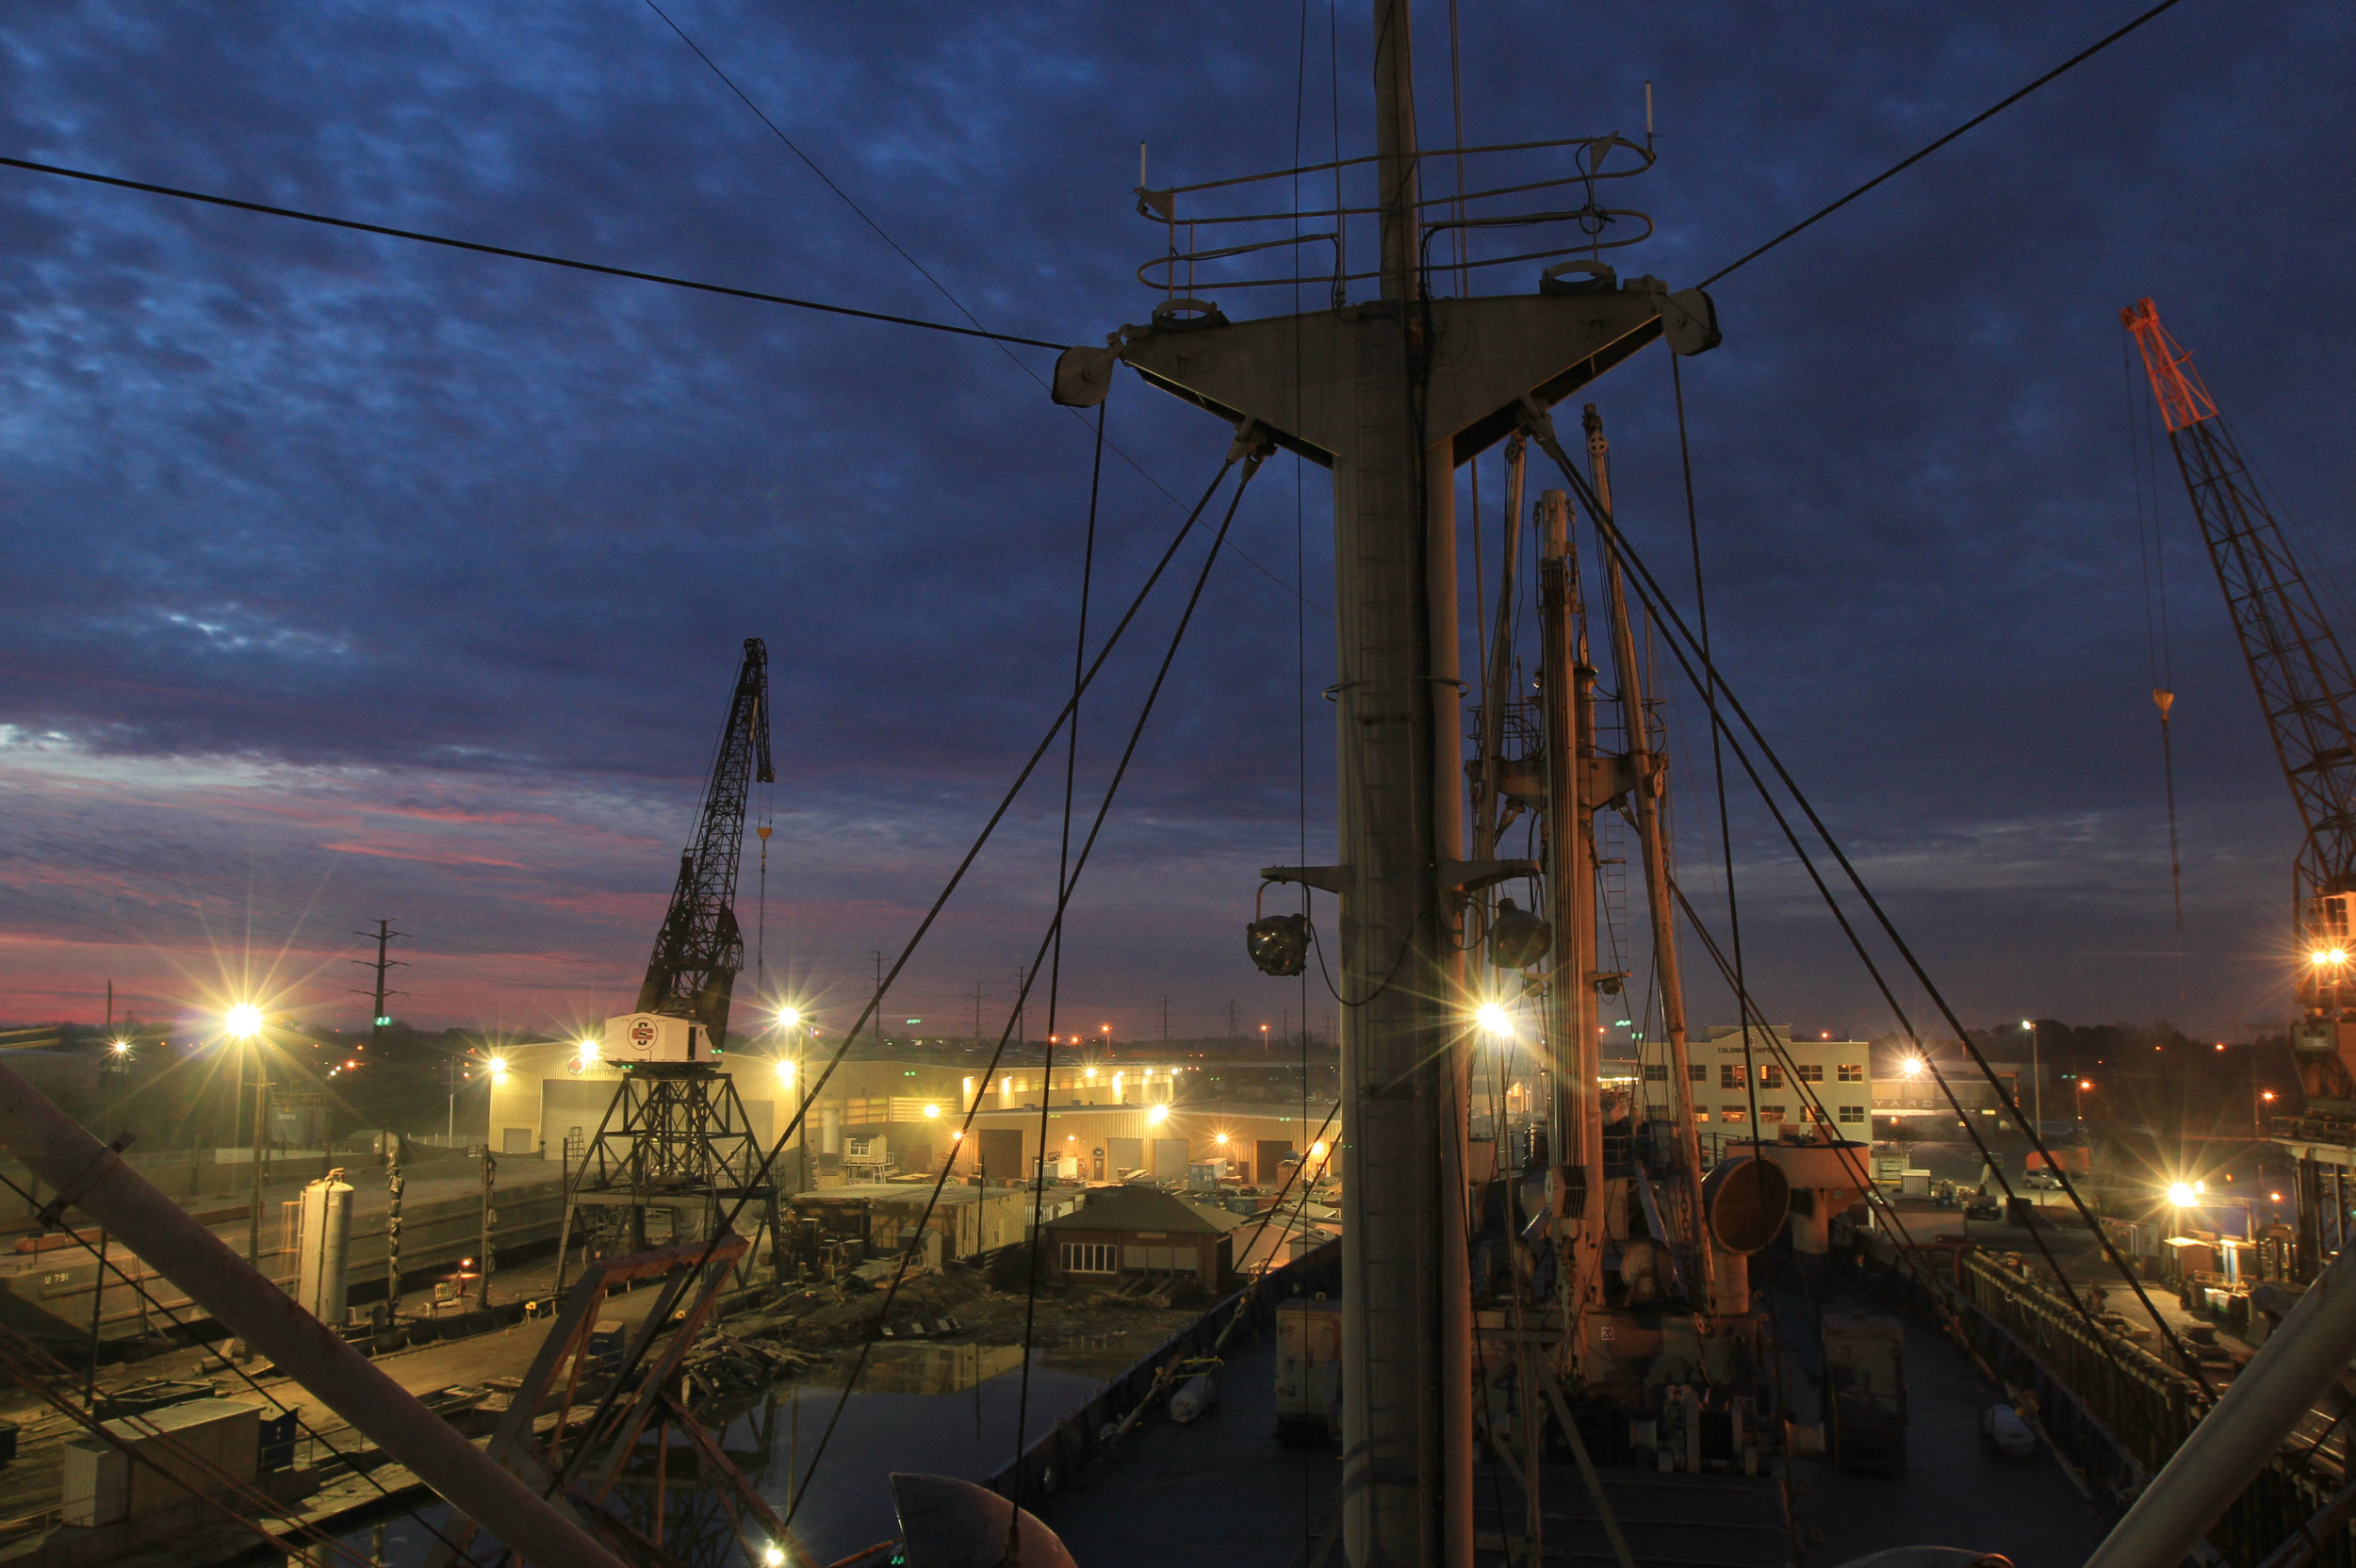 Taken on 12/6/14, on the morning that we are leaving the shipyard to return to Baltimore.  It was a verycloudy sky and it was debatable if we would see the sun, but goodbyes to the Norfolk/Portsmouth skies and the shipyard needed to be made by the photographer and theBROWN on our last day at  Colonna's Shipyard.